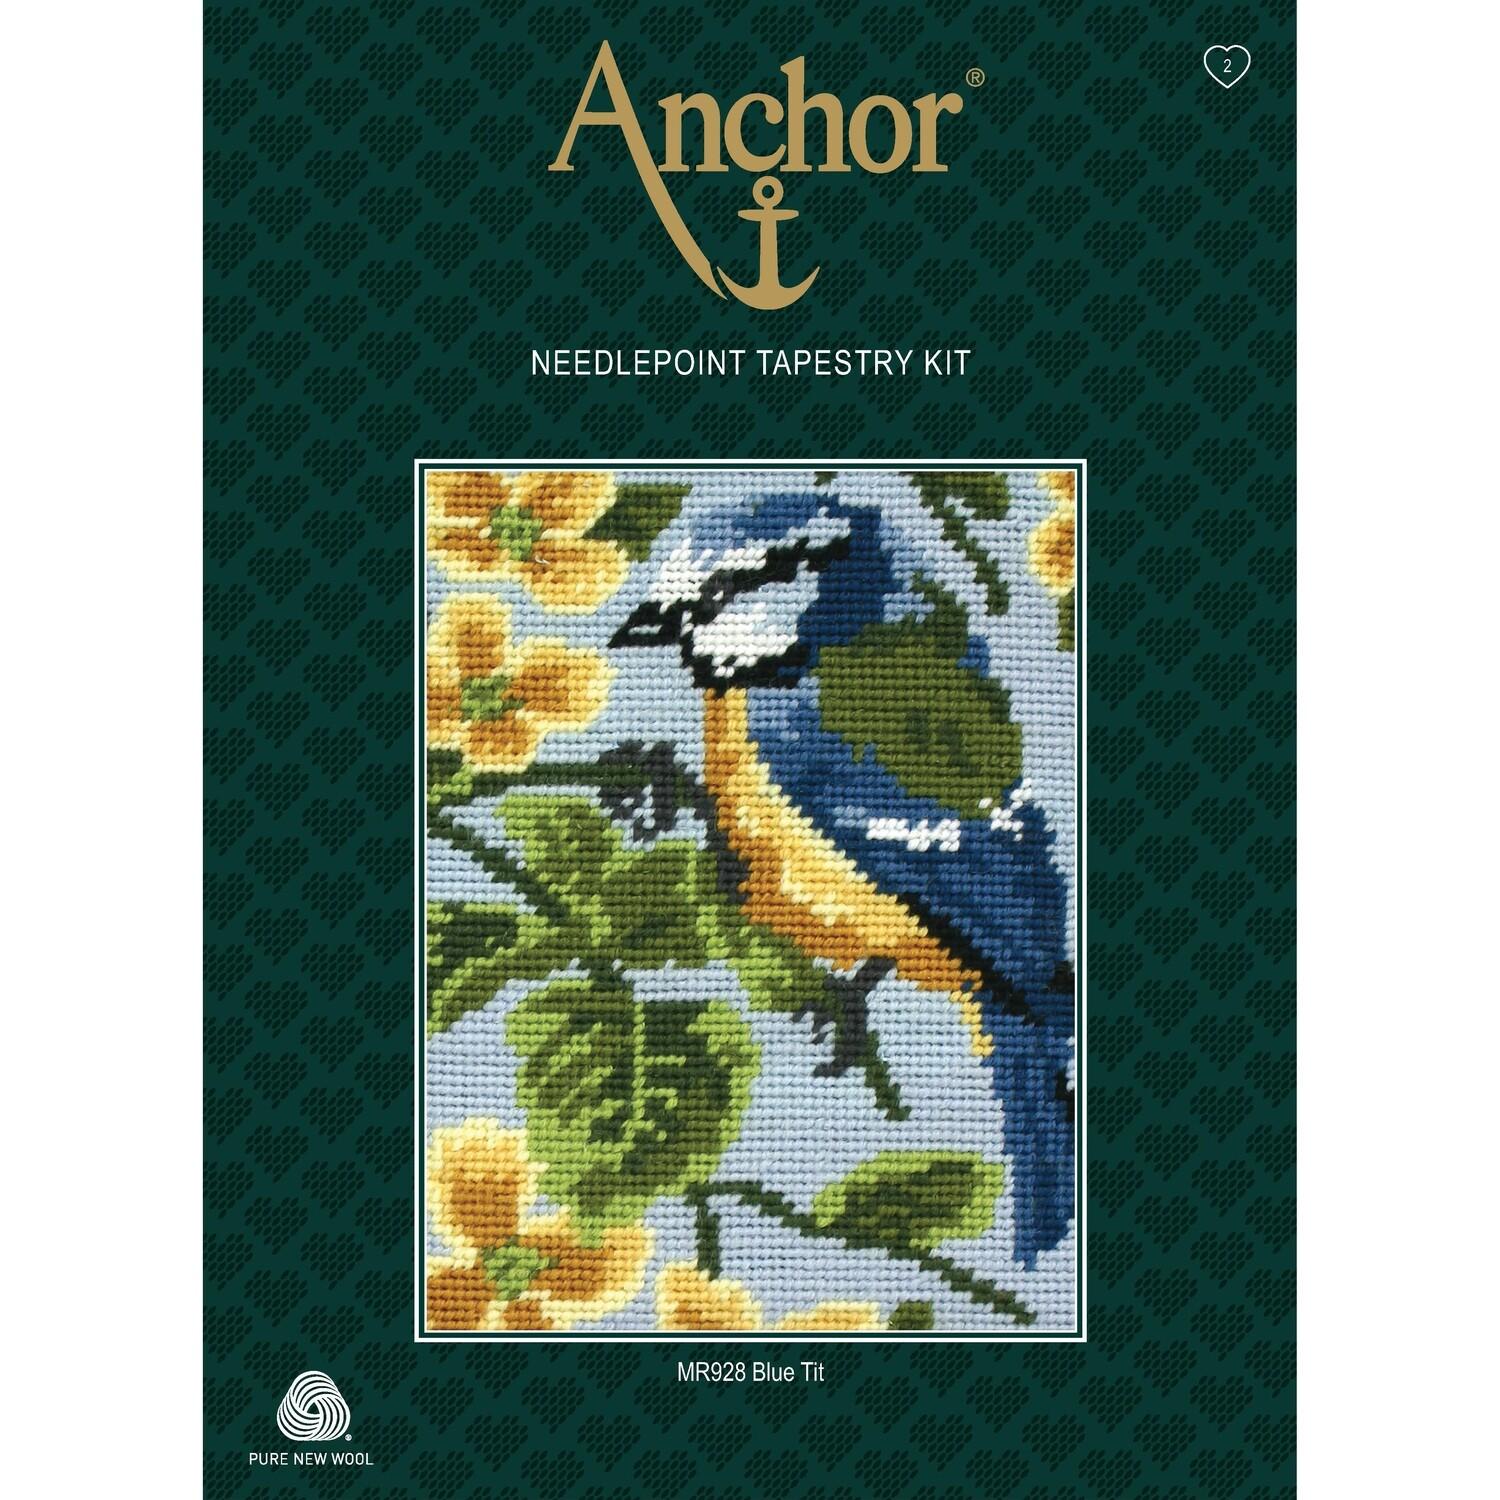 Anchor Starter Tapestry Kit - Blue Tit